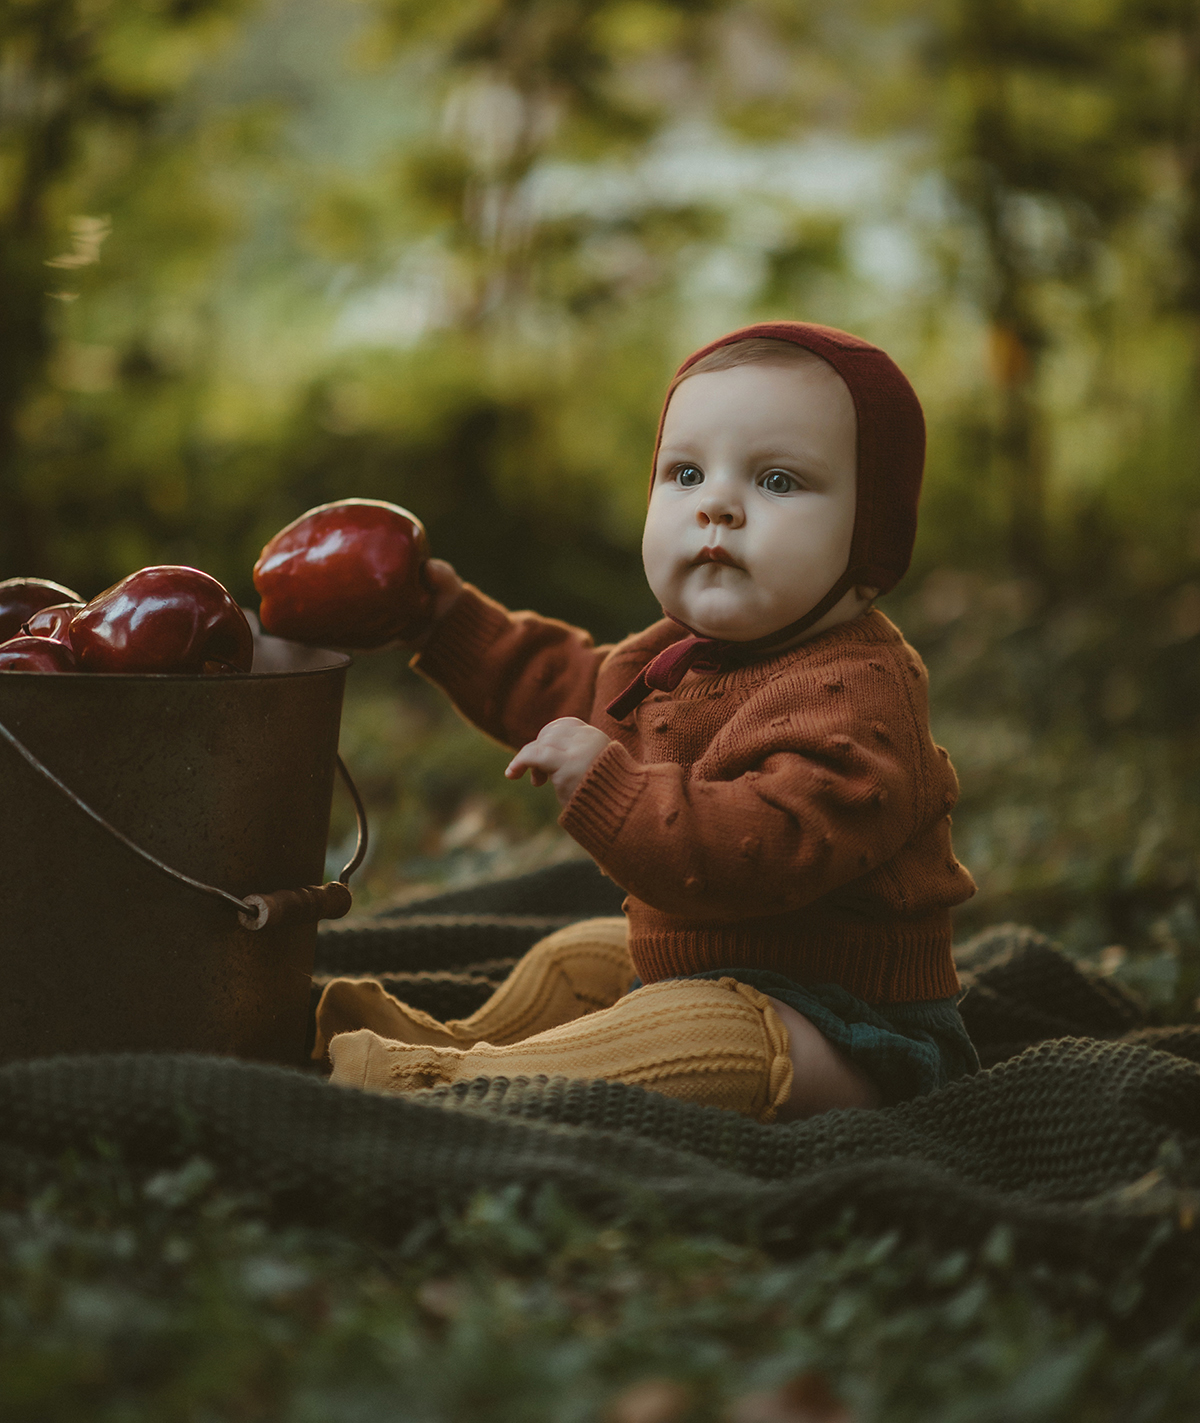 Baby in earthy knitwear with apple bucket